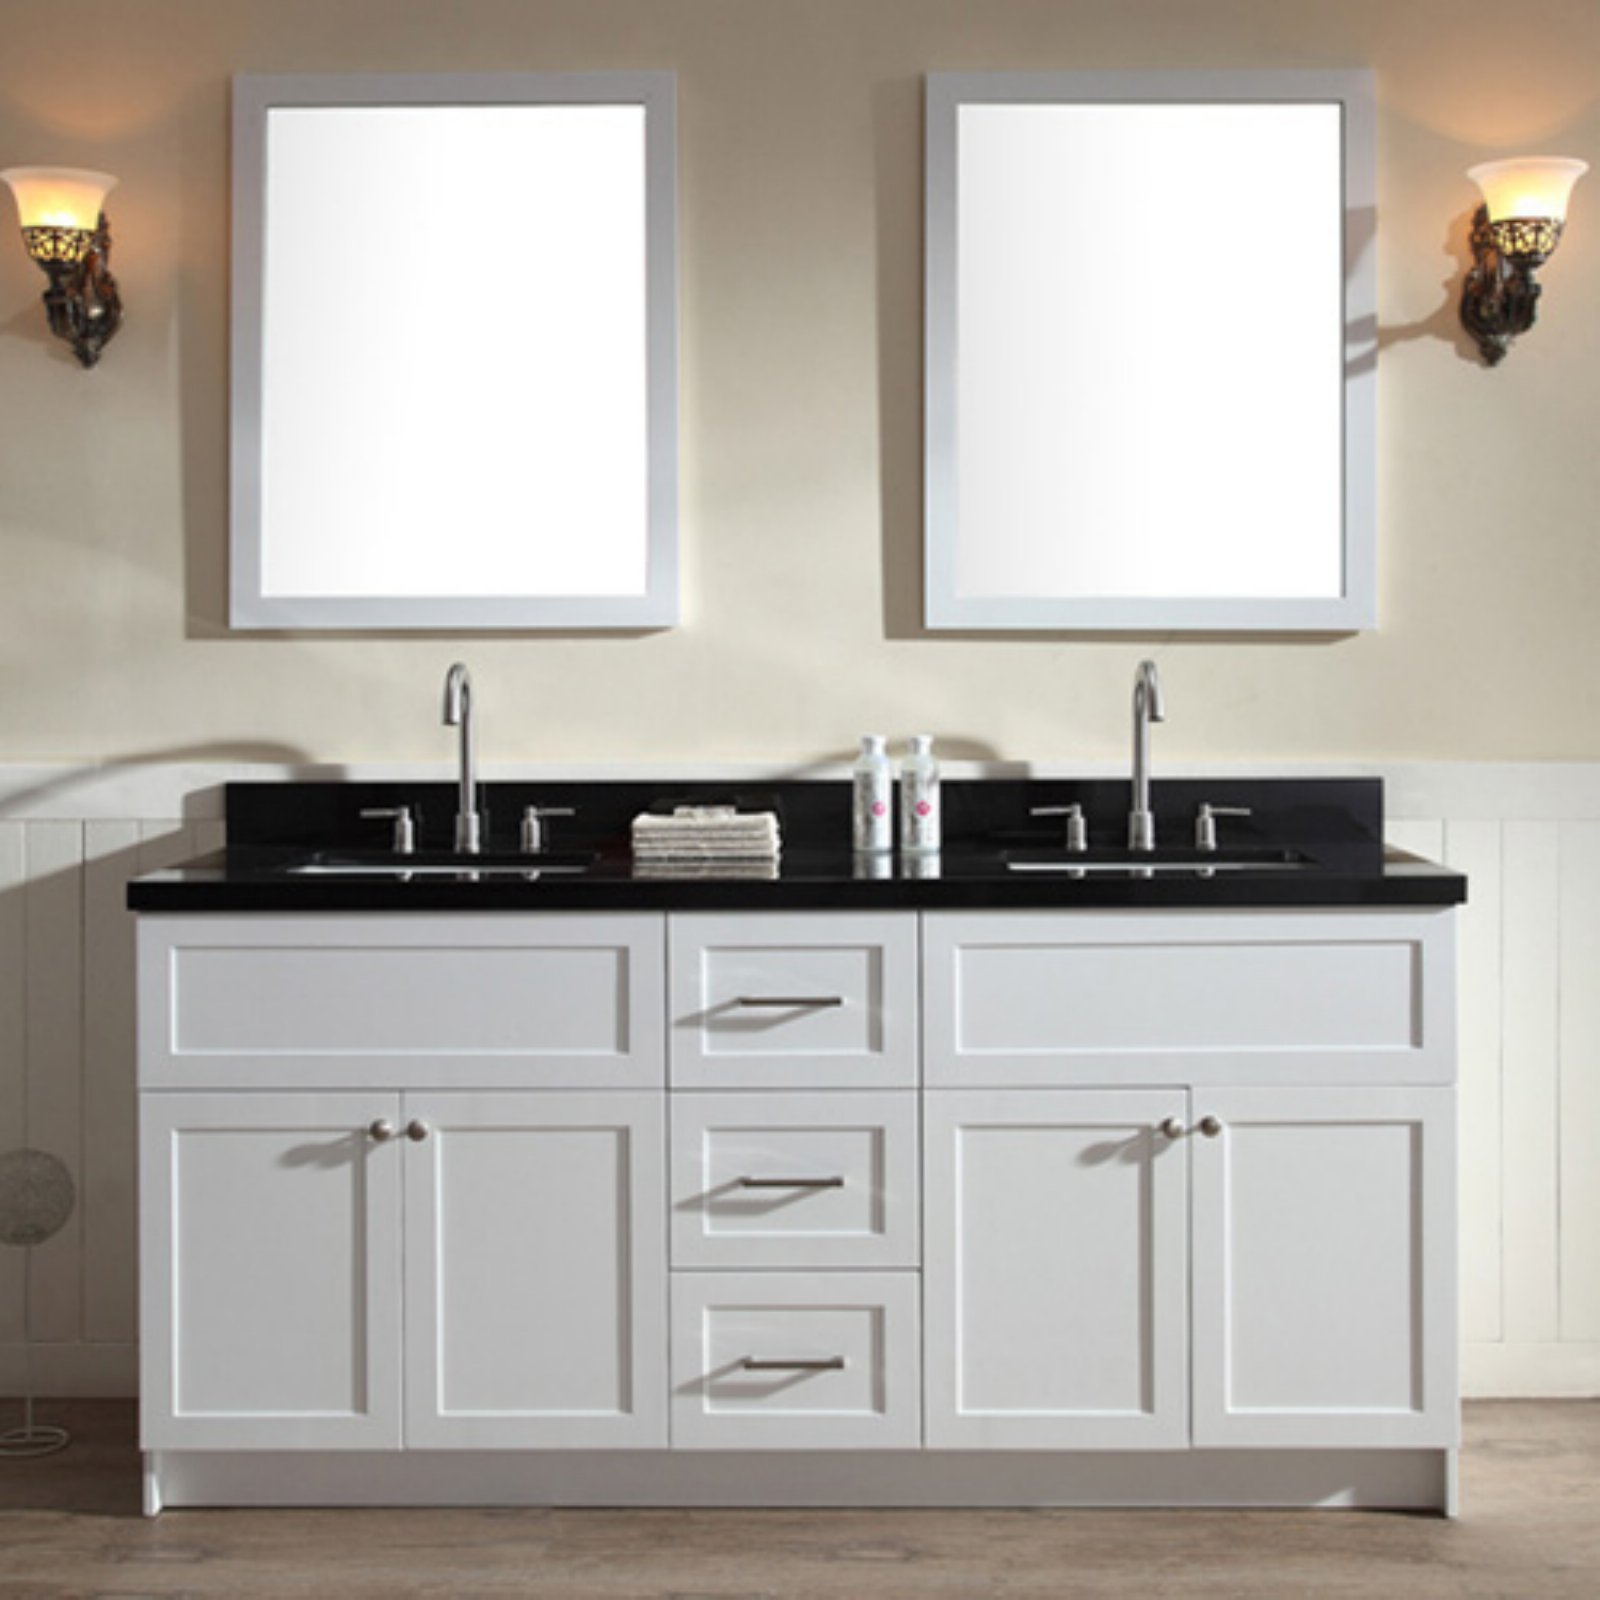 ariel hamlet 73 in bath vanity in white with granite vanity top in absolute black with white basins and mirrors